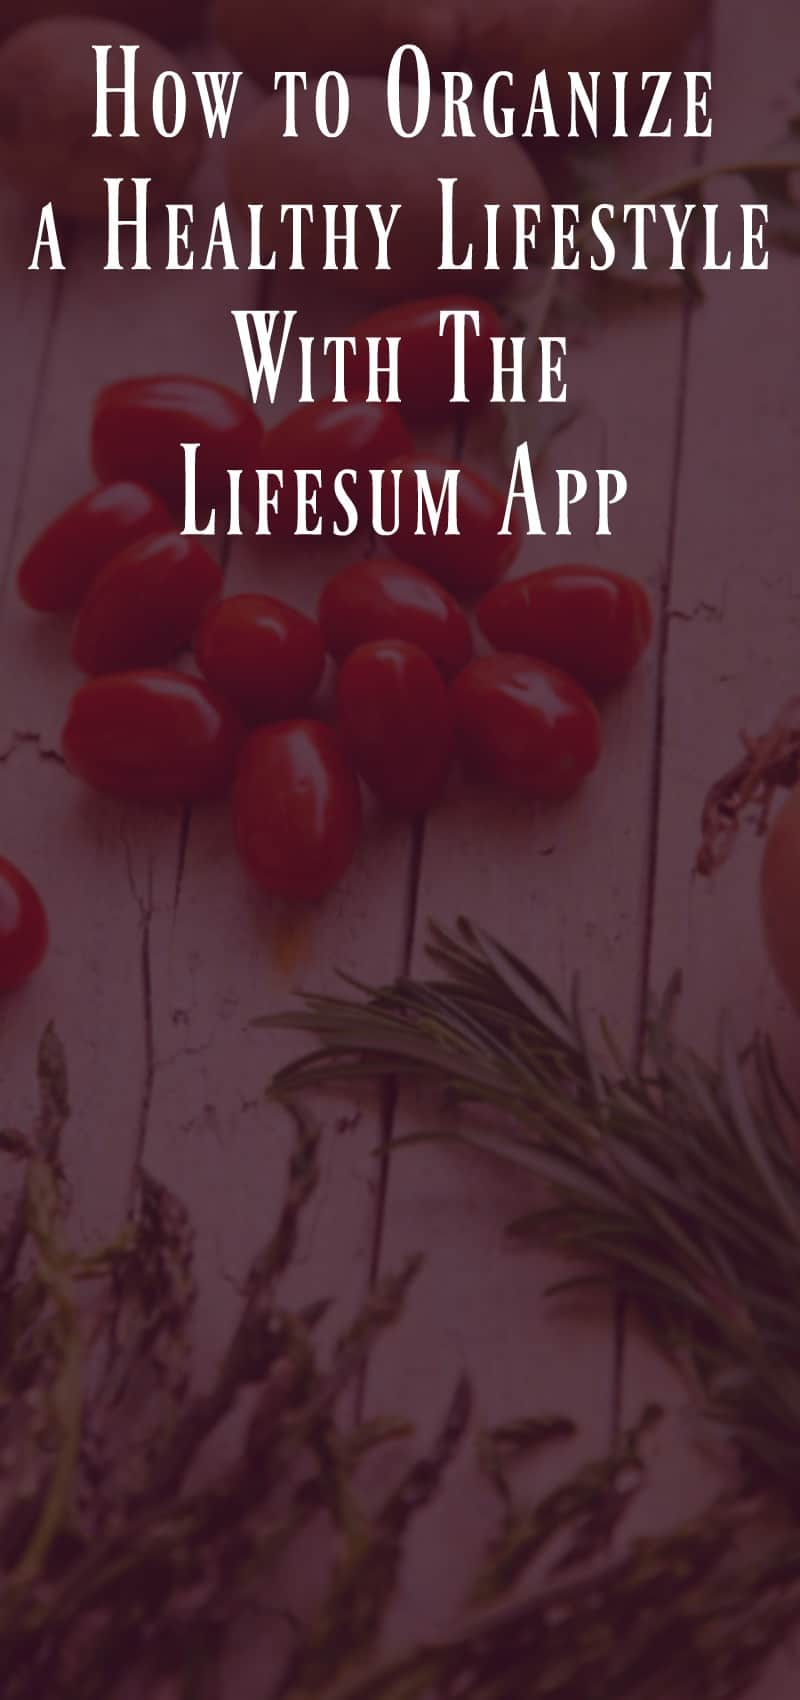 How to Organize a Healthy Lifestyle with The Lifesum App